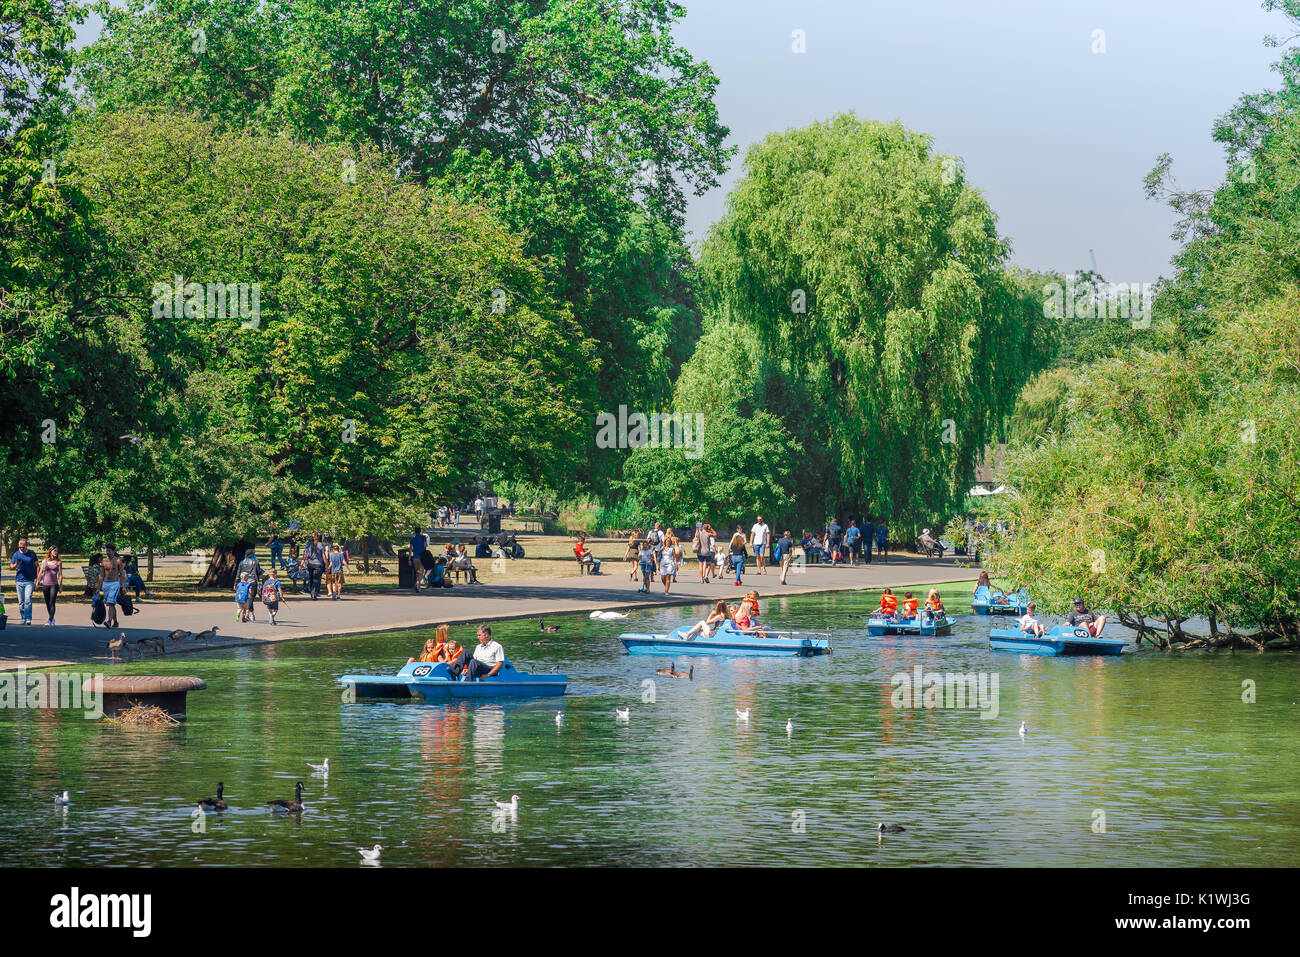 Boating lake London, tourists in pedalos enjoy a summer afternoon on the lake in Regent's Park, London, UK. - Stock Image